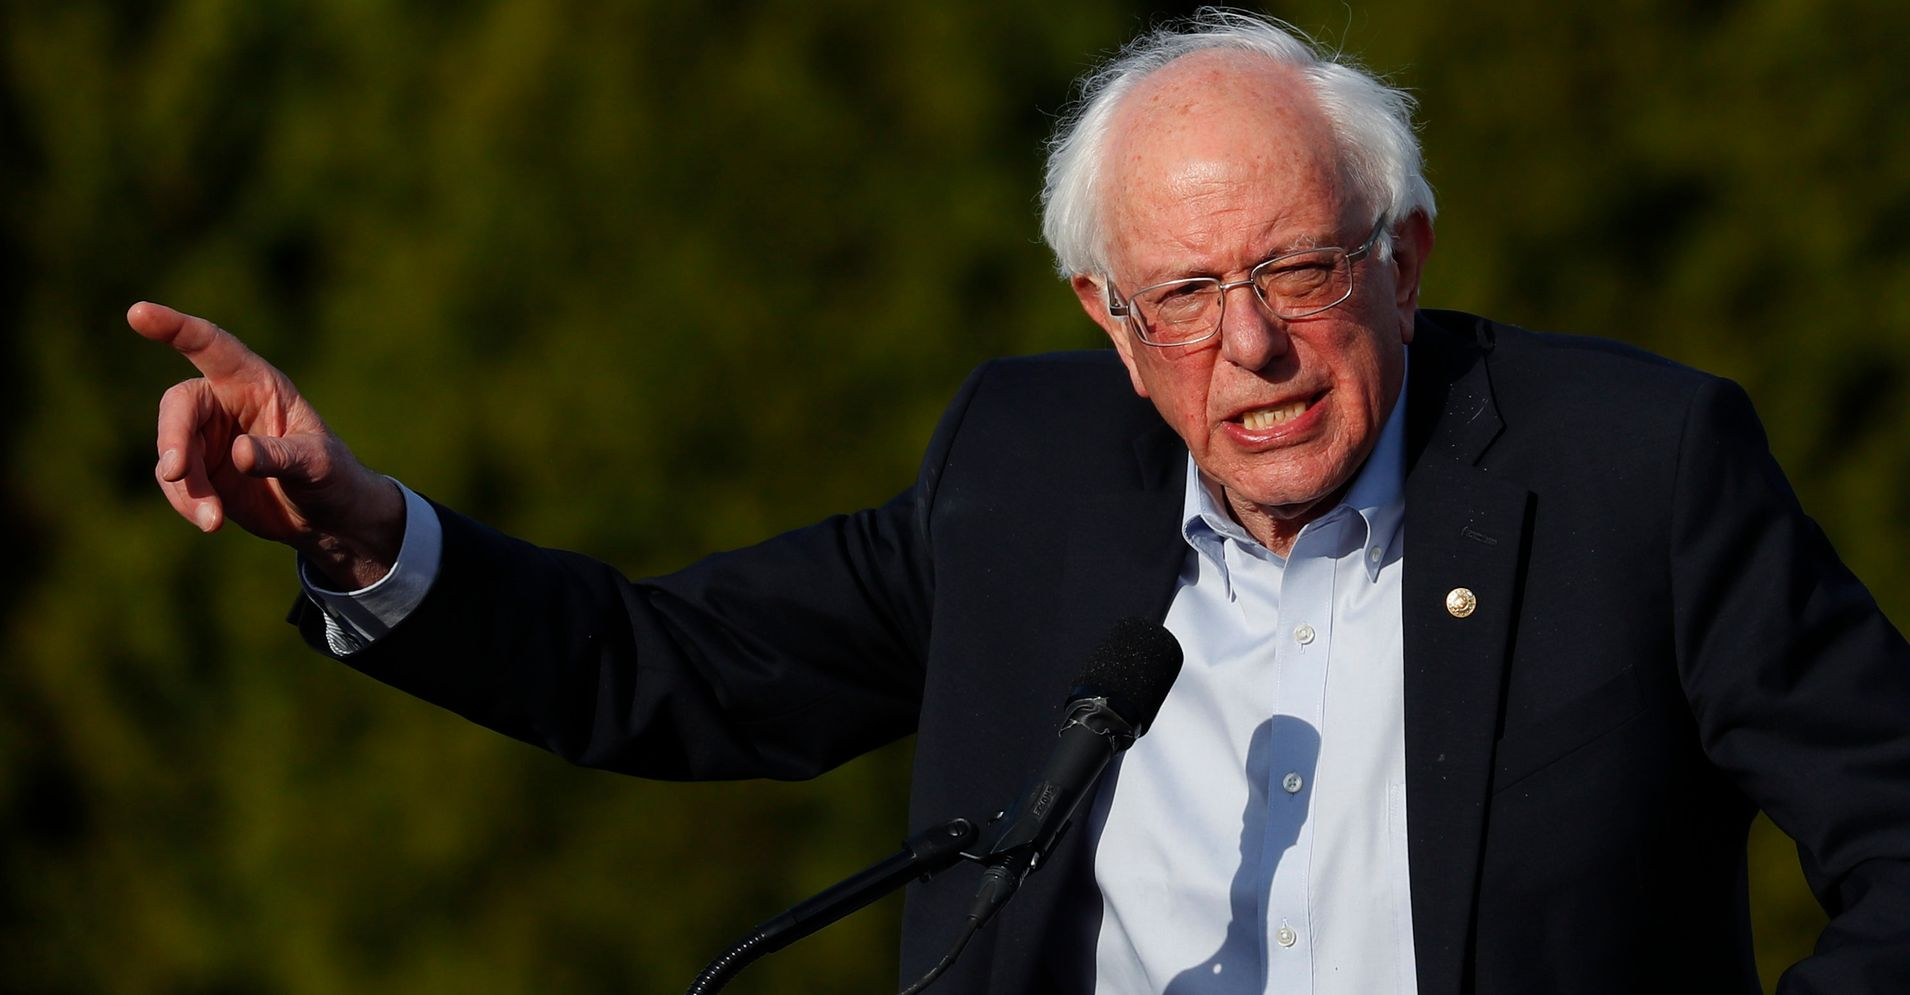 Westlake Legal Group 5cb35c941f0000c6007f1bae Bernie Sanders Accuses Liberal Think Tank Of Trying To Stymie His 2020 Campaign